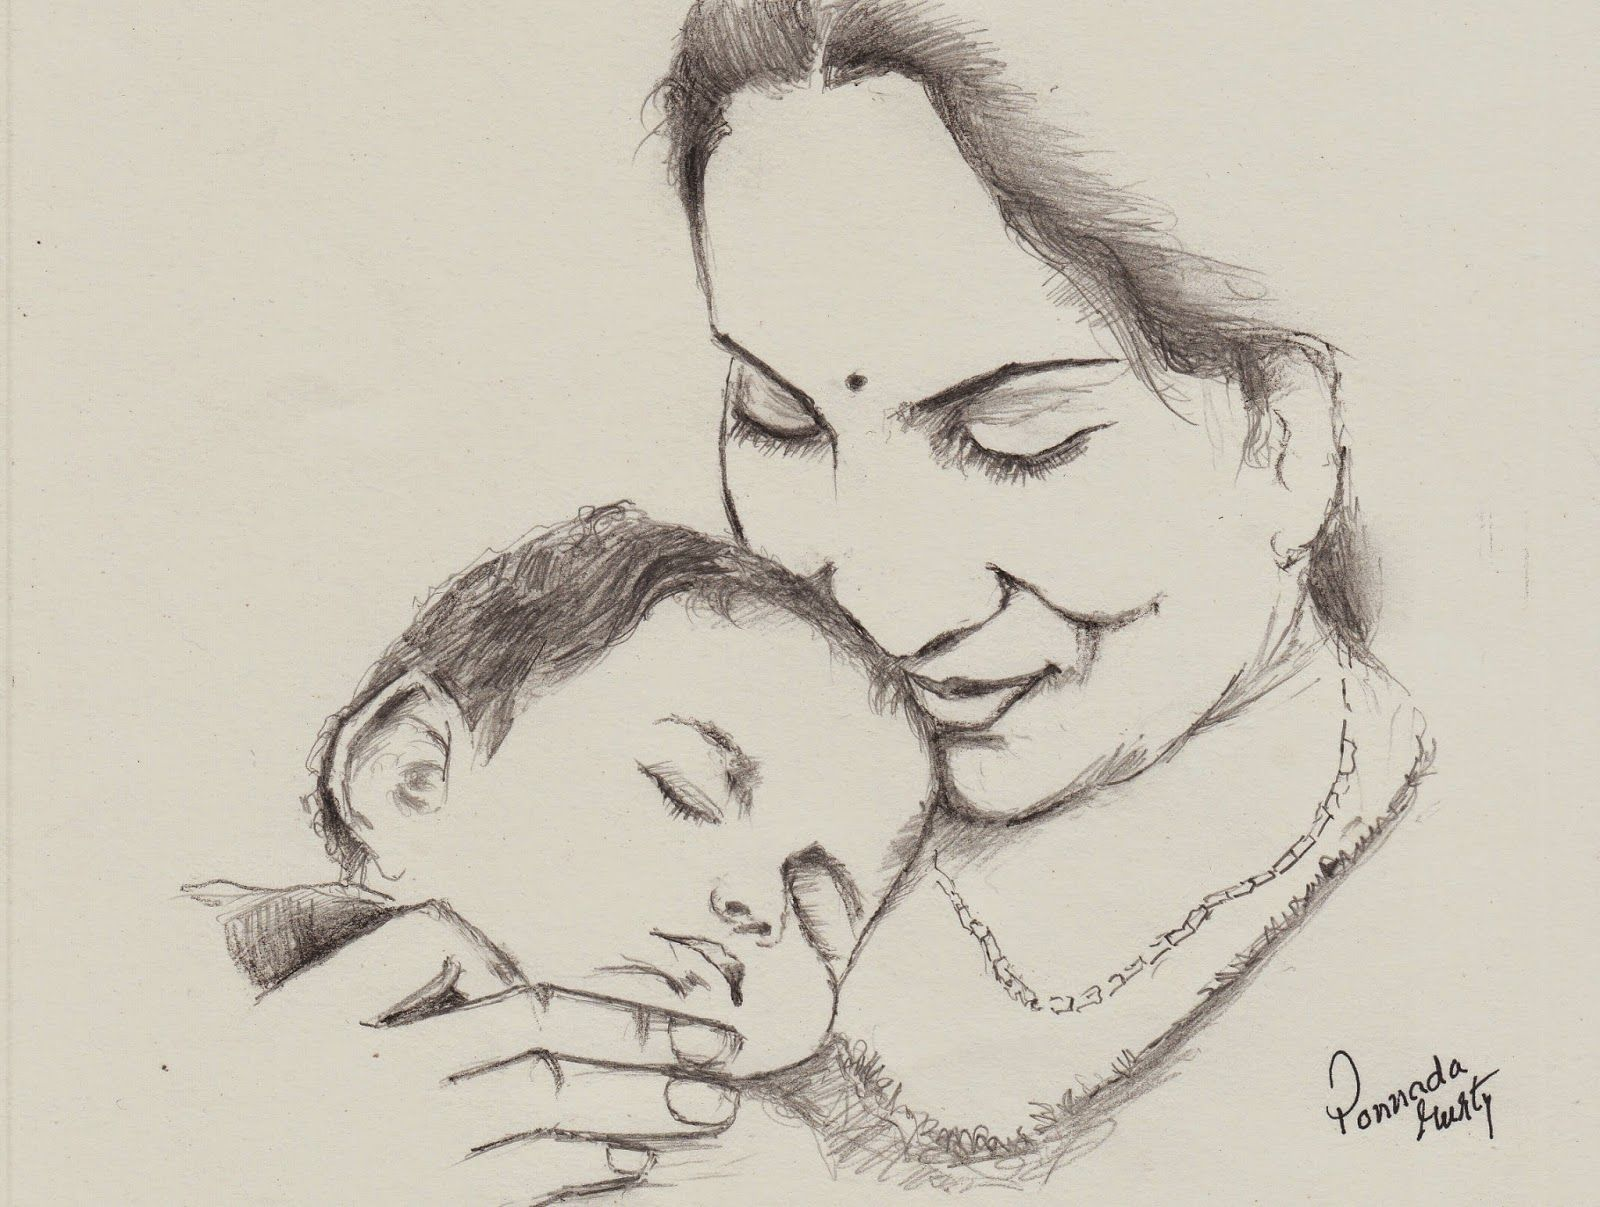 Mother Day Image Pencil Sketch